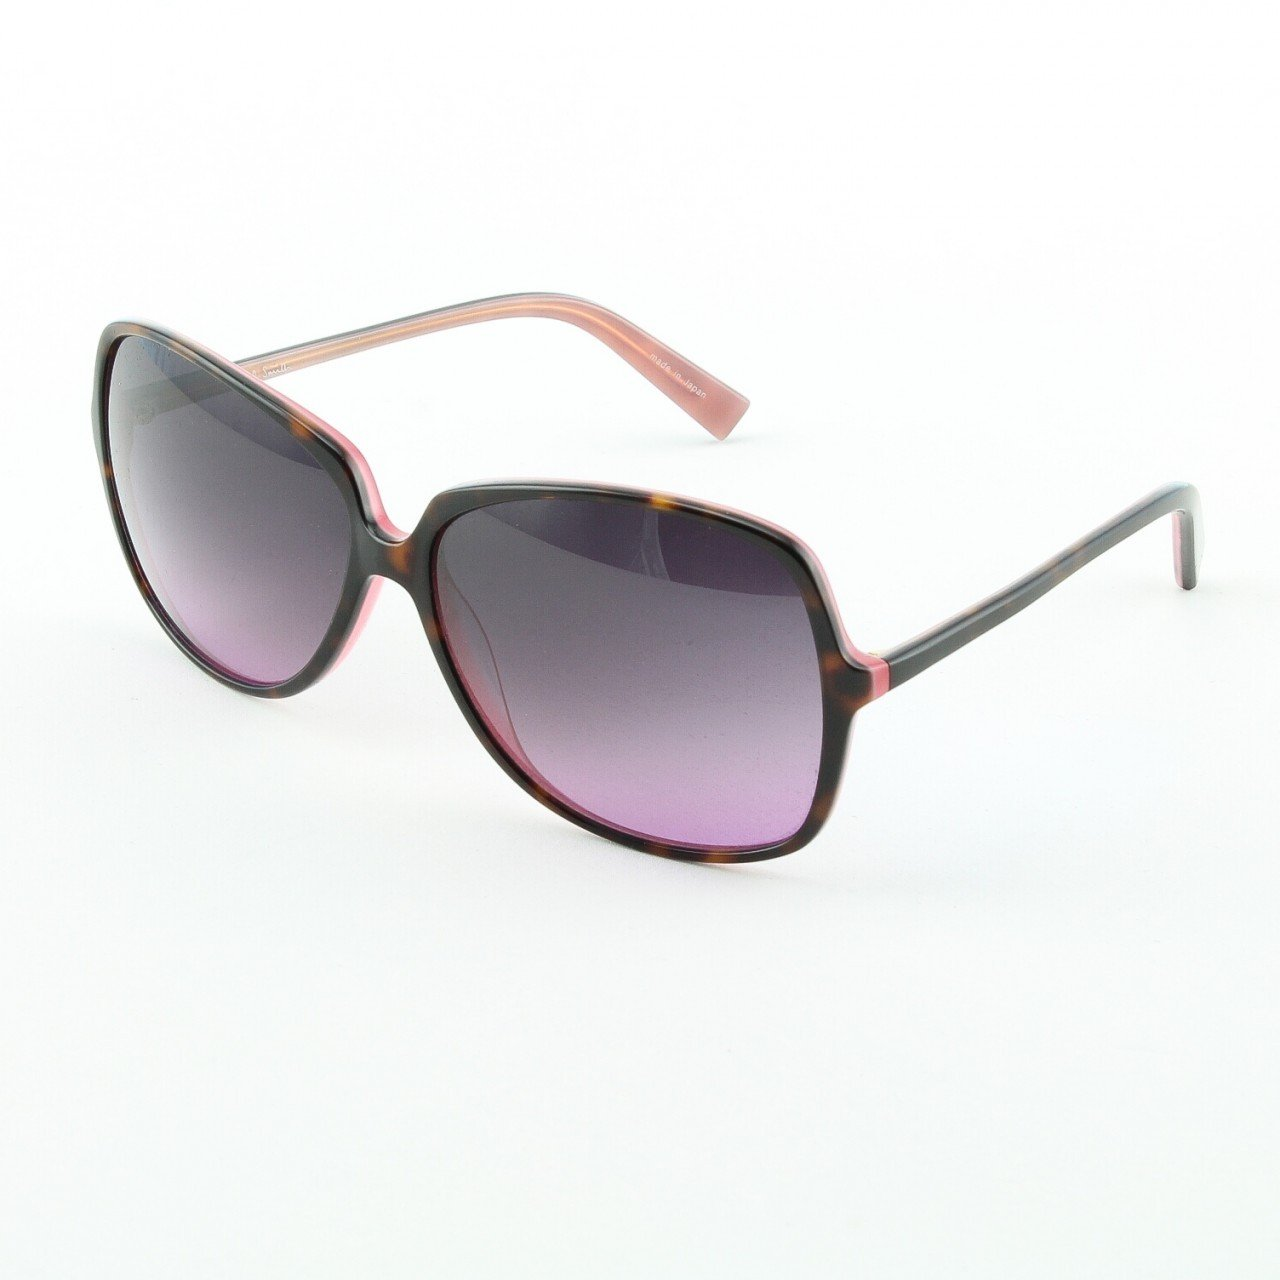 Paul Smith PS-372 OABL Sunglasses Color Tortoise Brown Pink with Purple Lenses